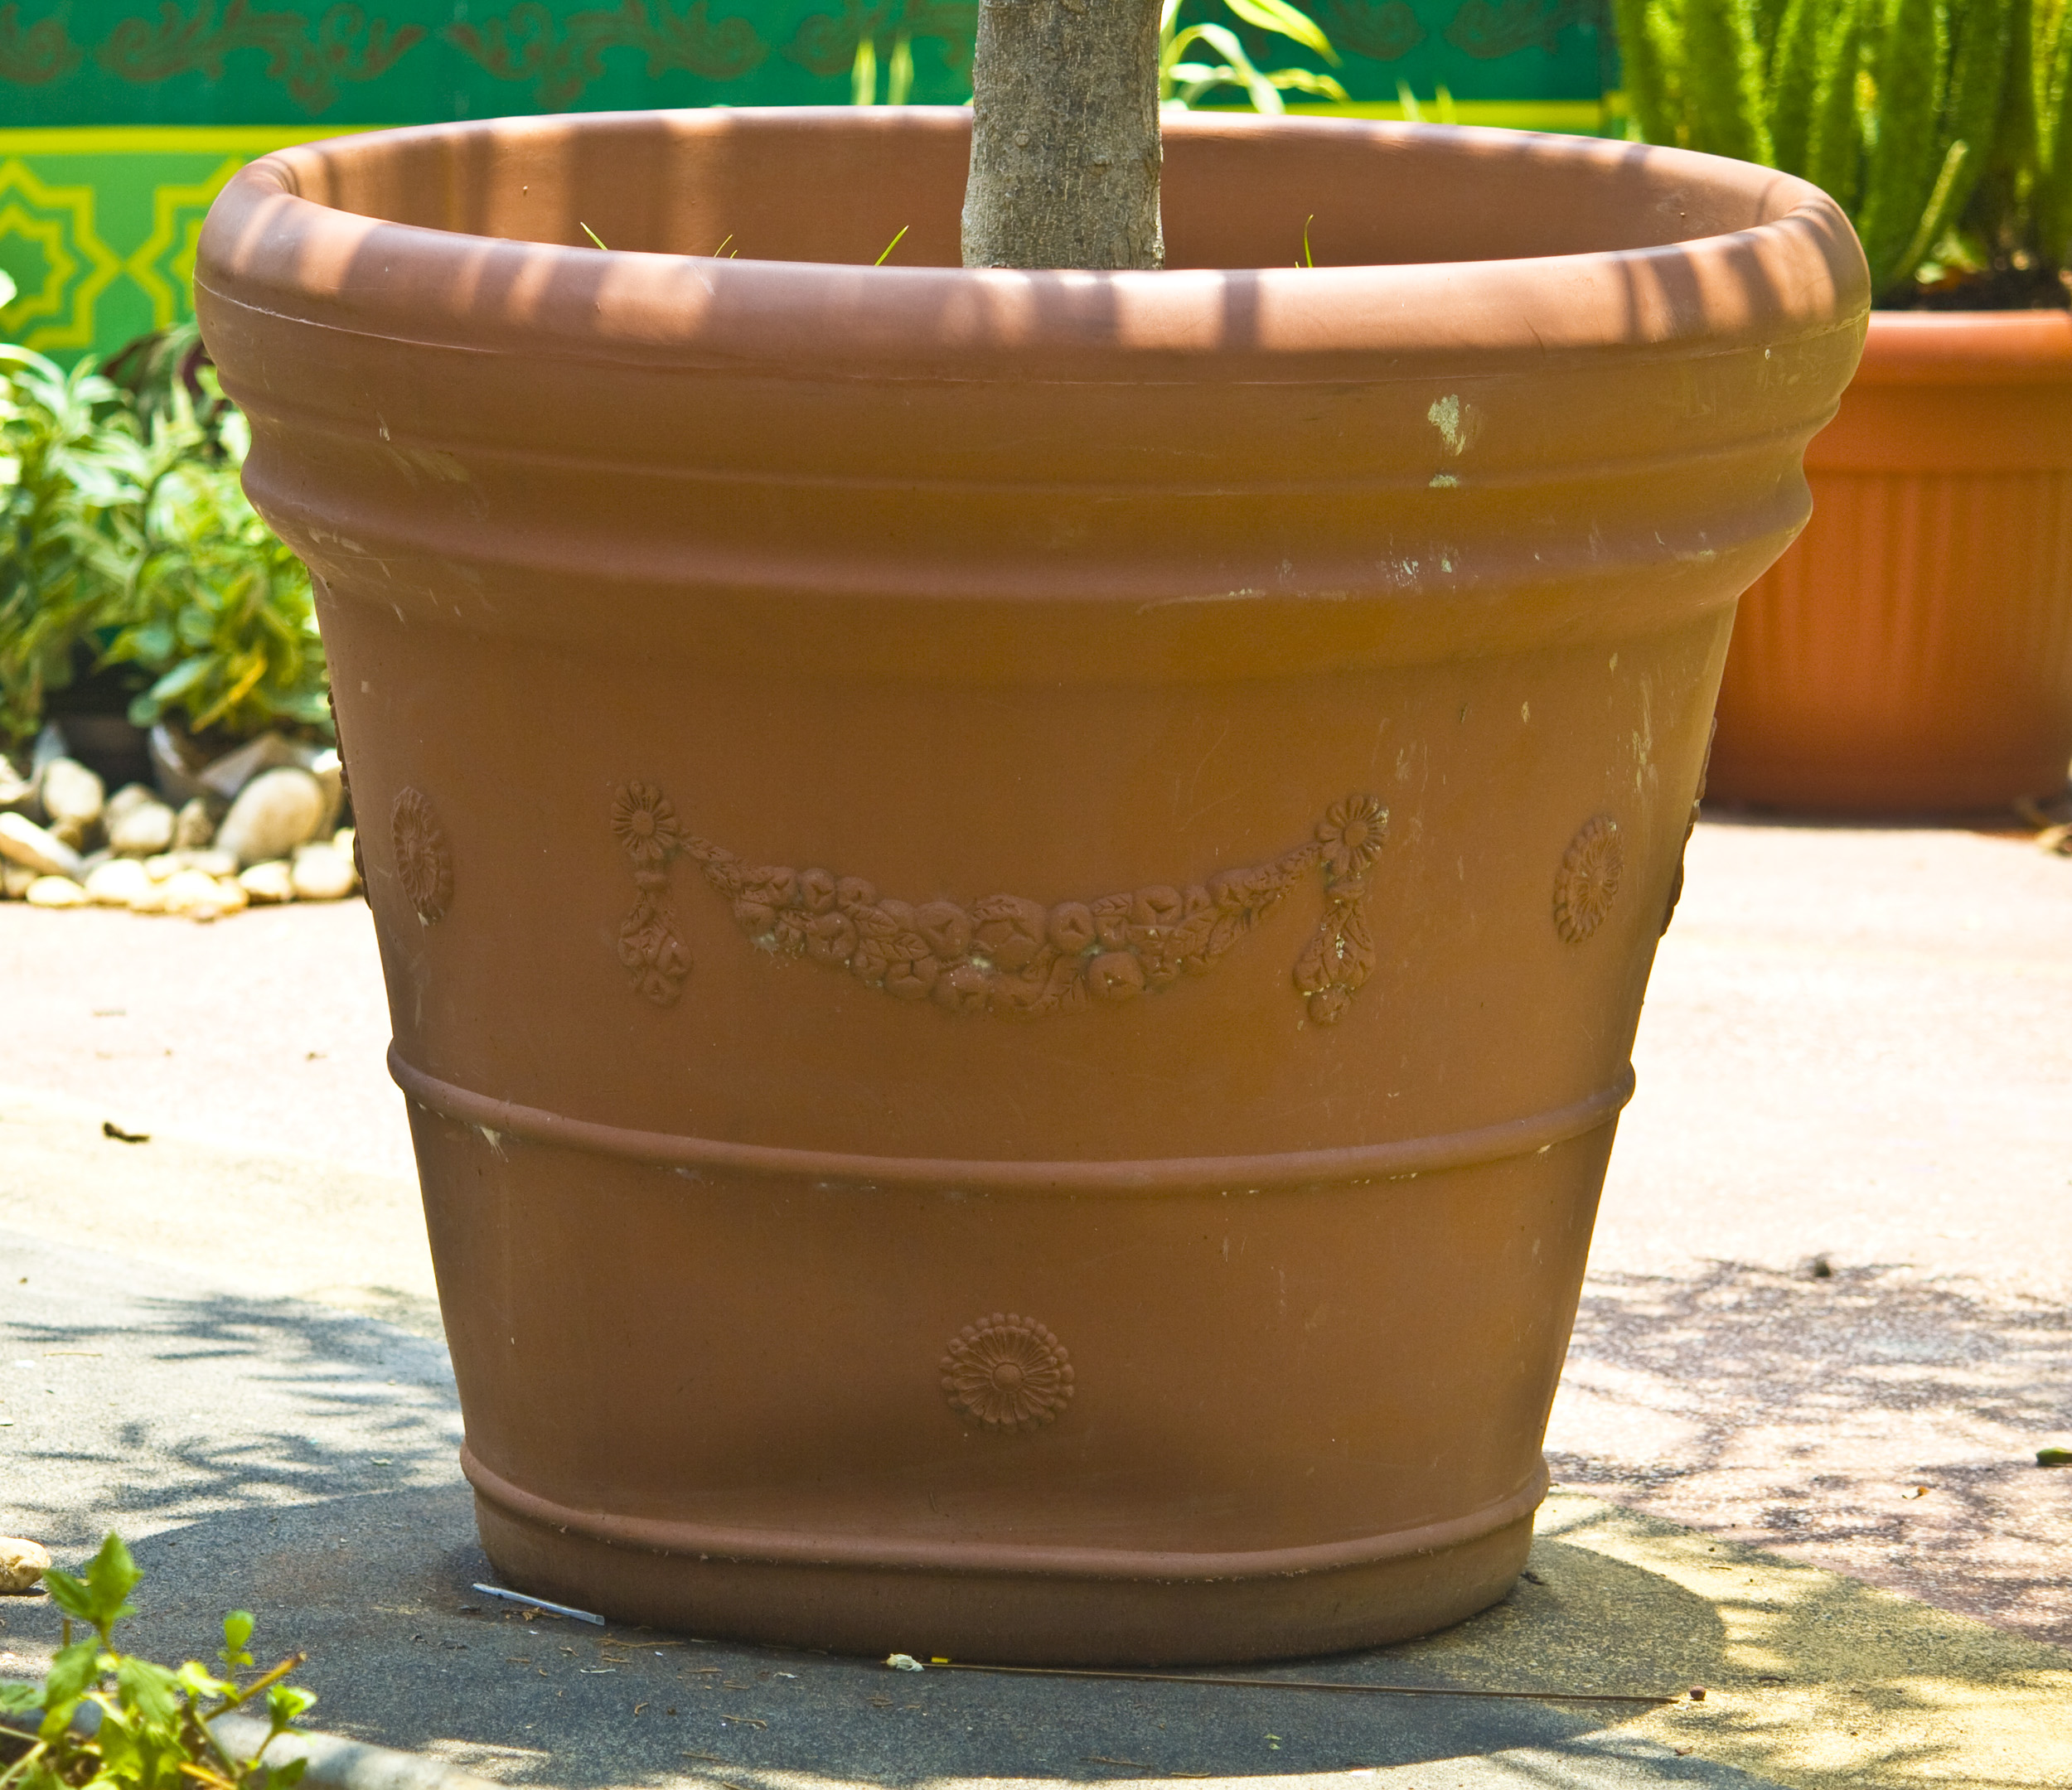 Flower pot photo